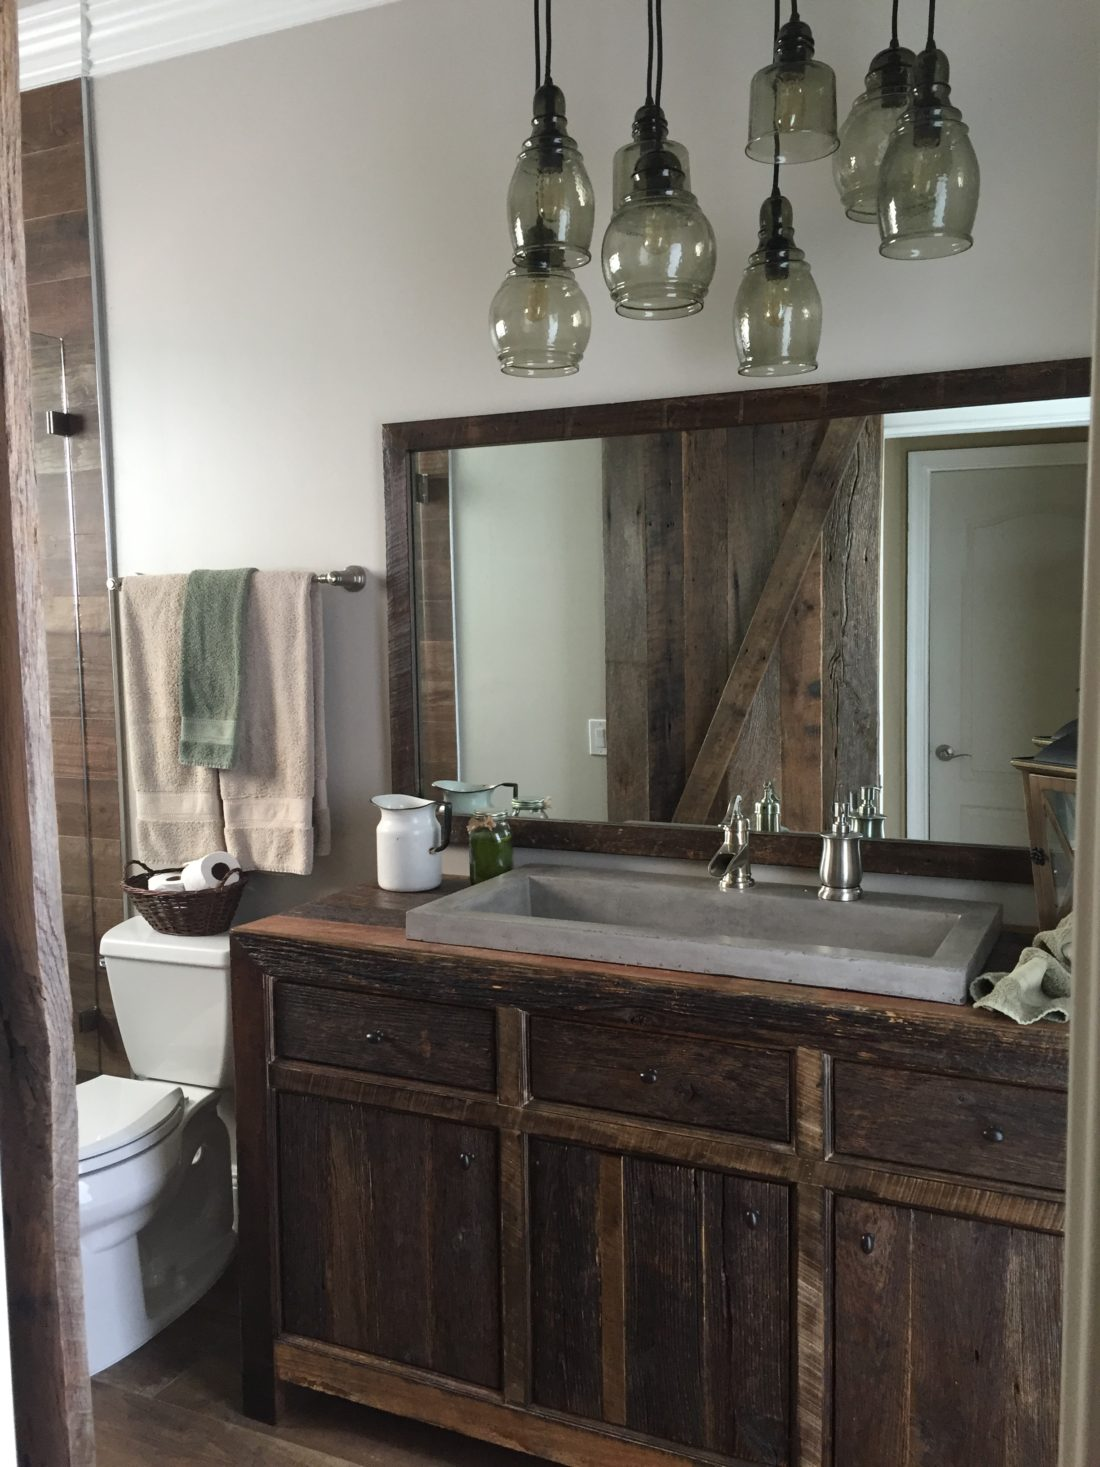 Rustic Wood Bathroom Vanity Home Design Ideas And Inspiration